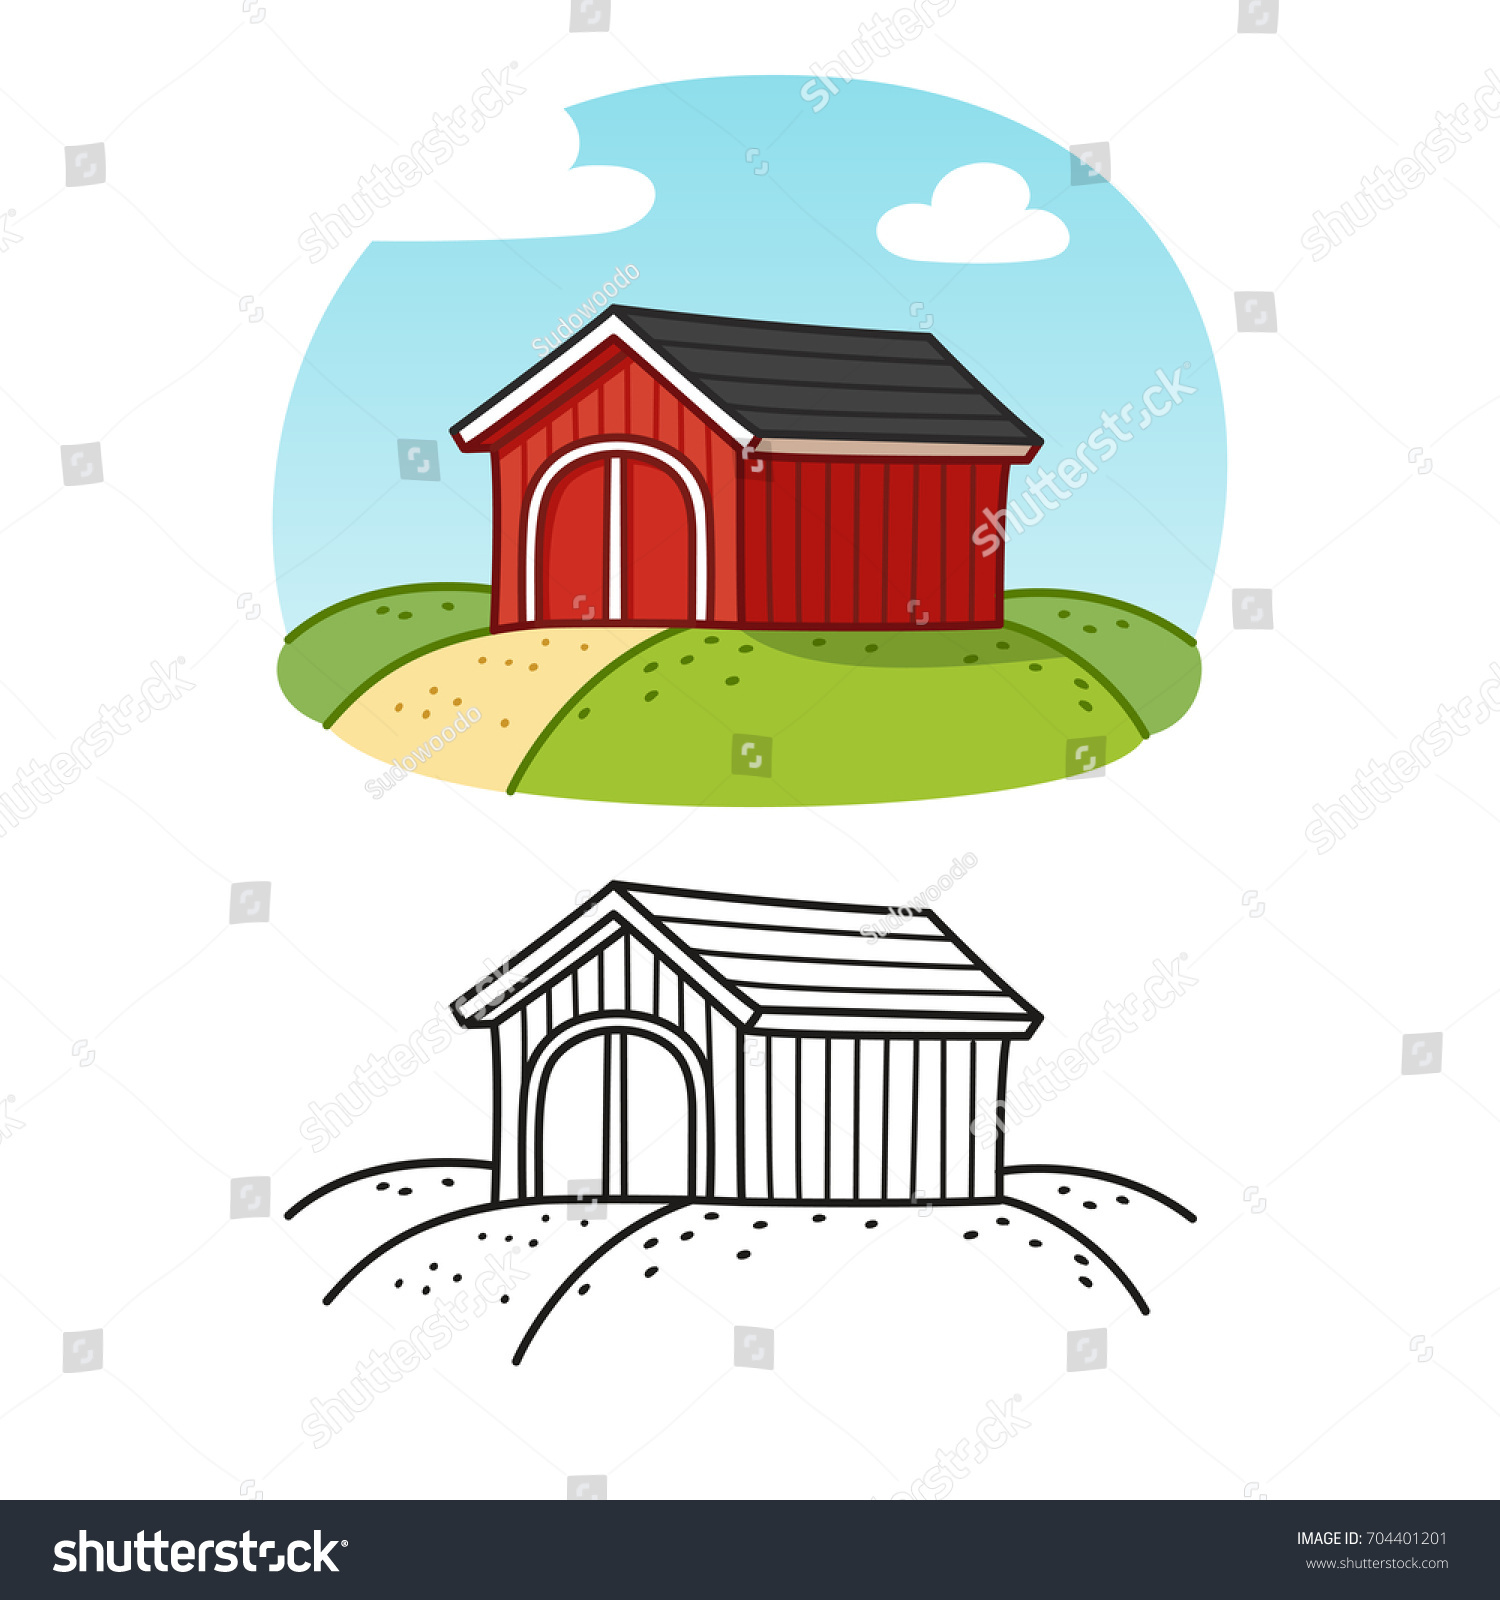 Traditional Red Wooden Barn Colored Drawing And Line Art Classic American Farm Building Illustration